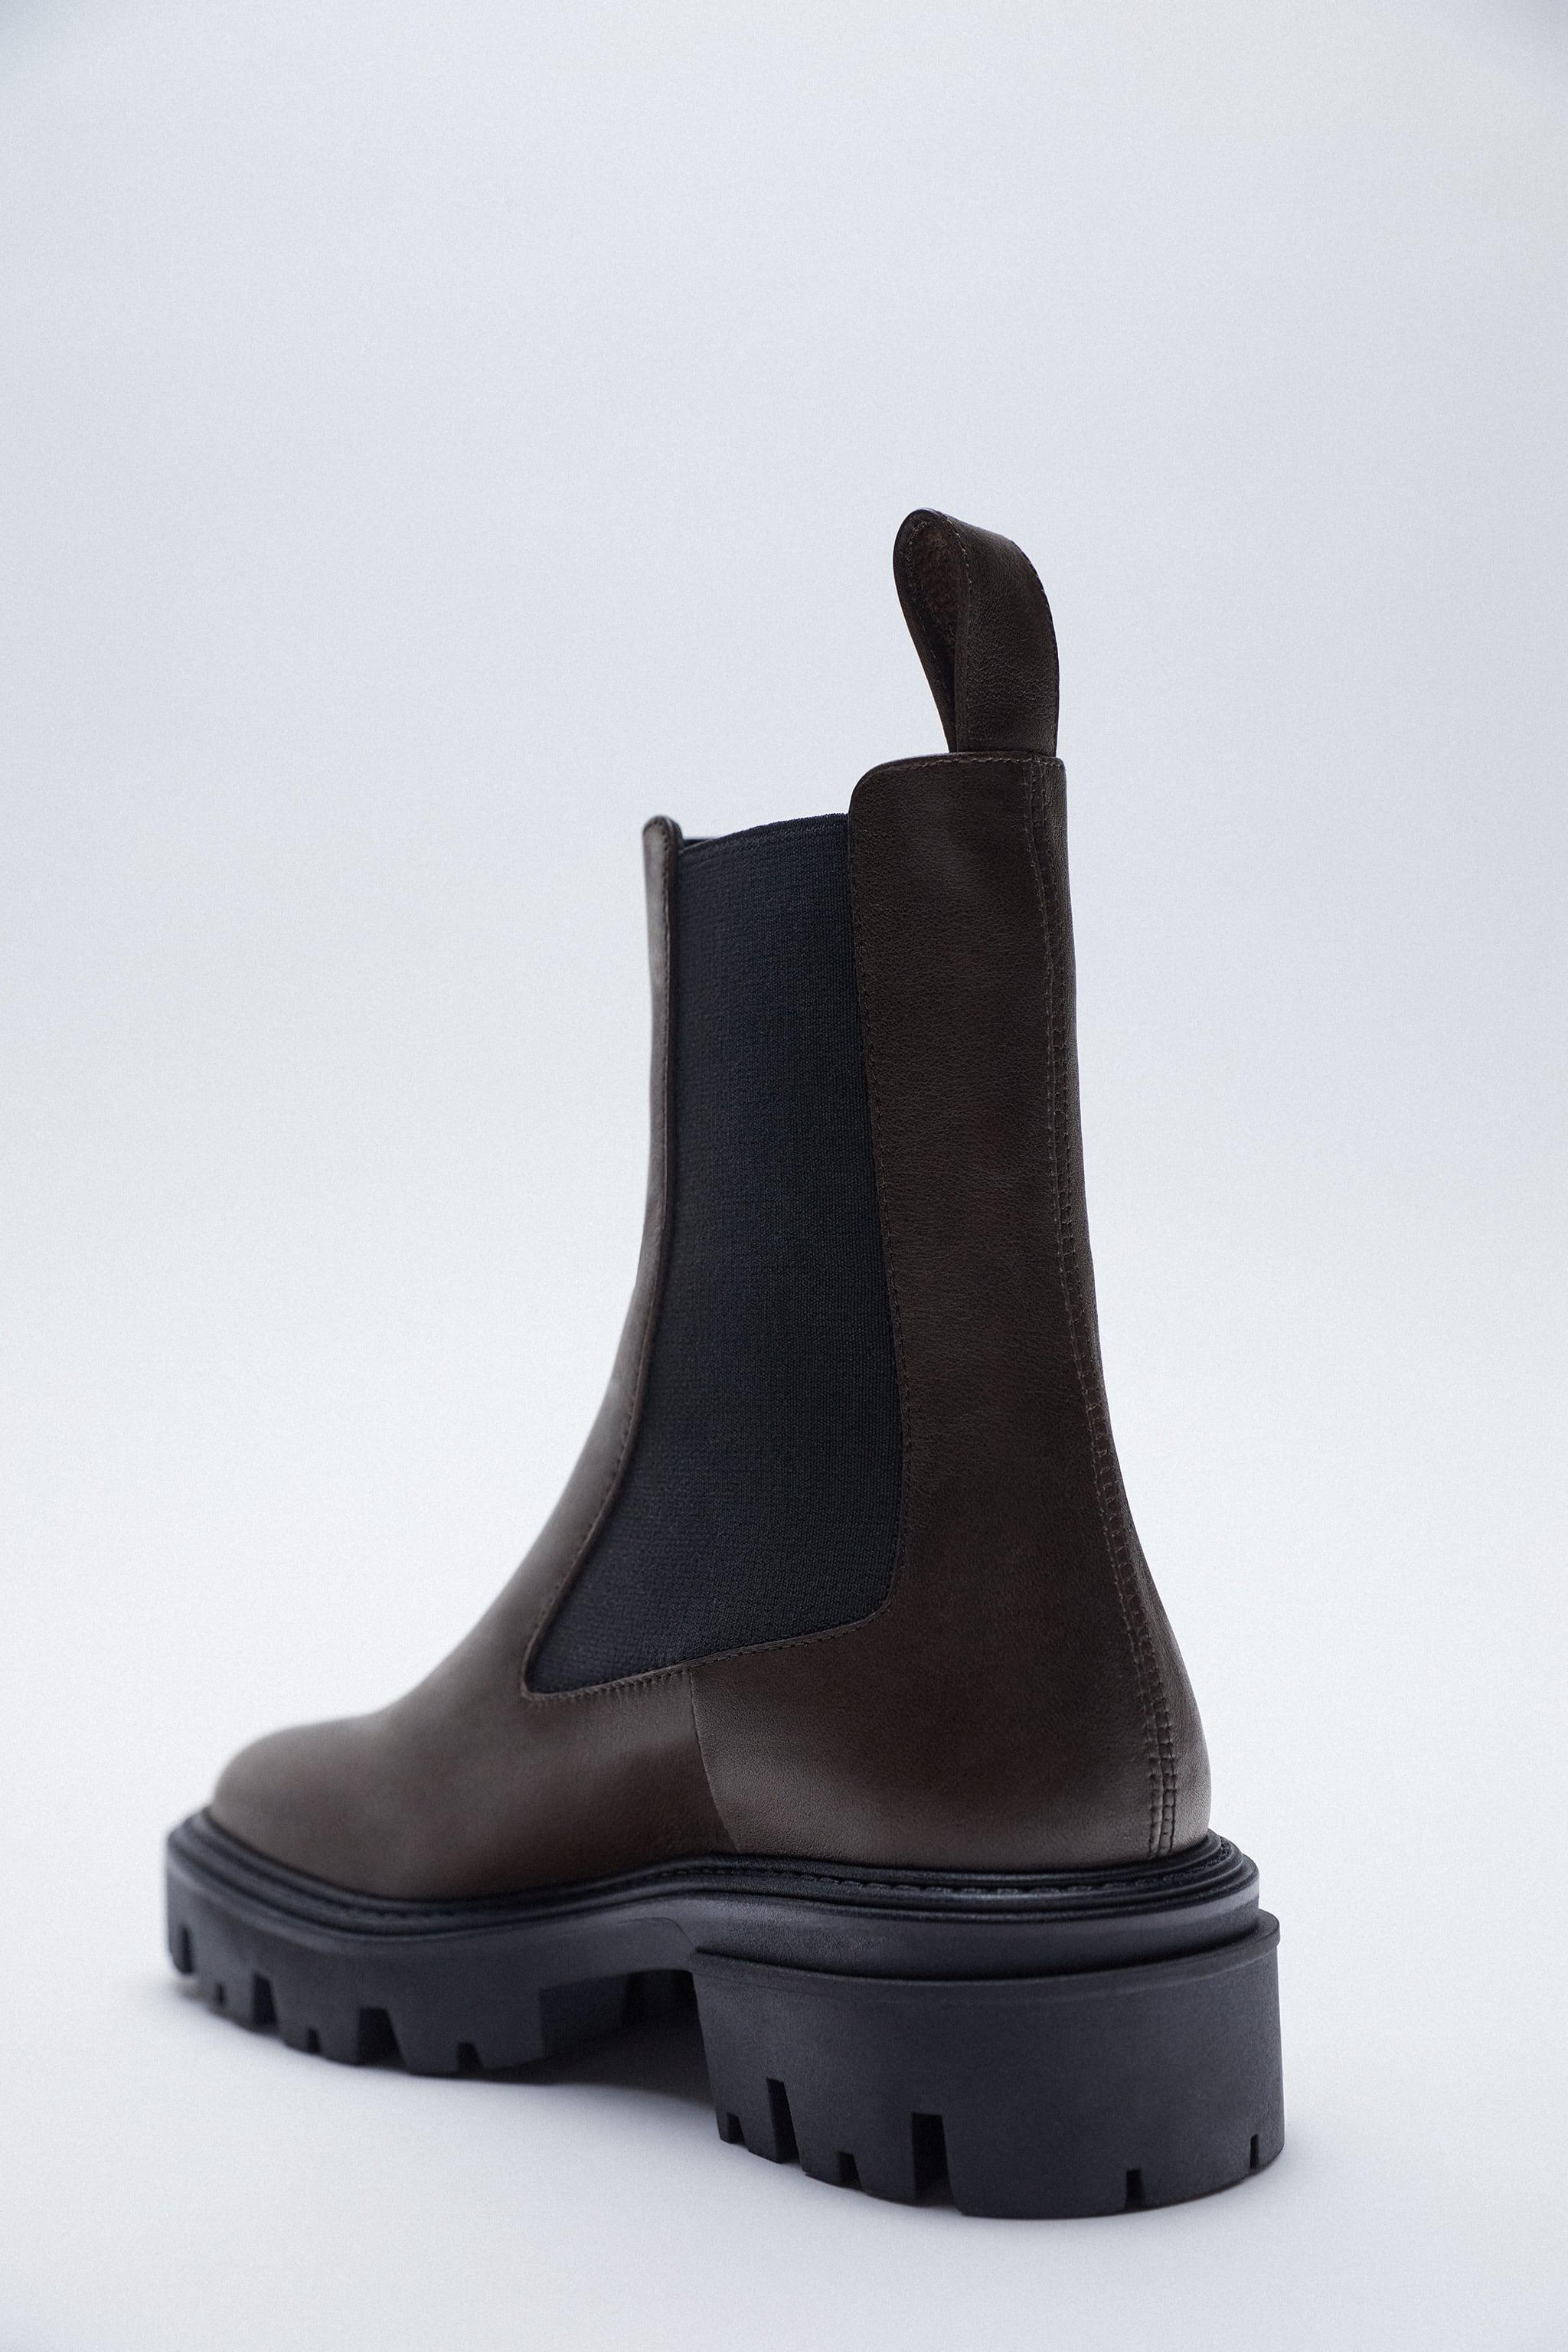 LOW HEEL LEATHER ANKLE BOOTS WITH ELASTIC GORING 2